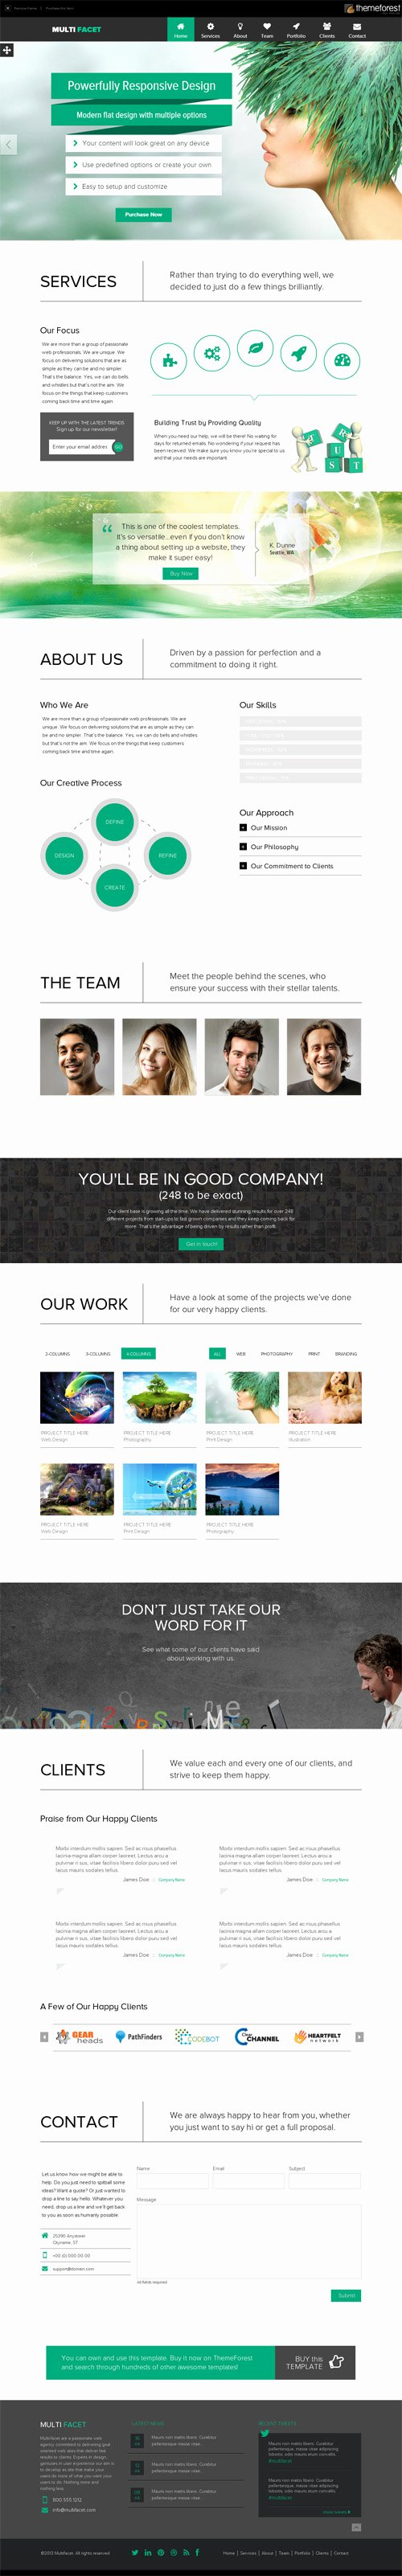 Responsive E Page Templates Permium Collection